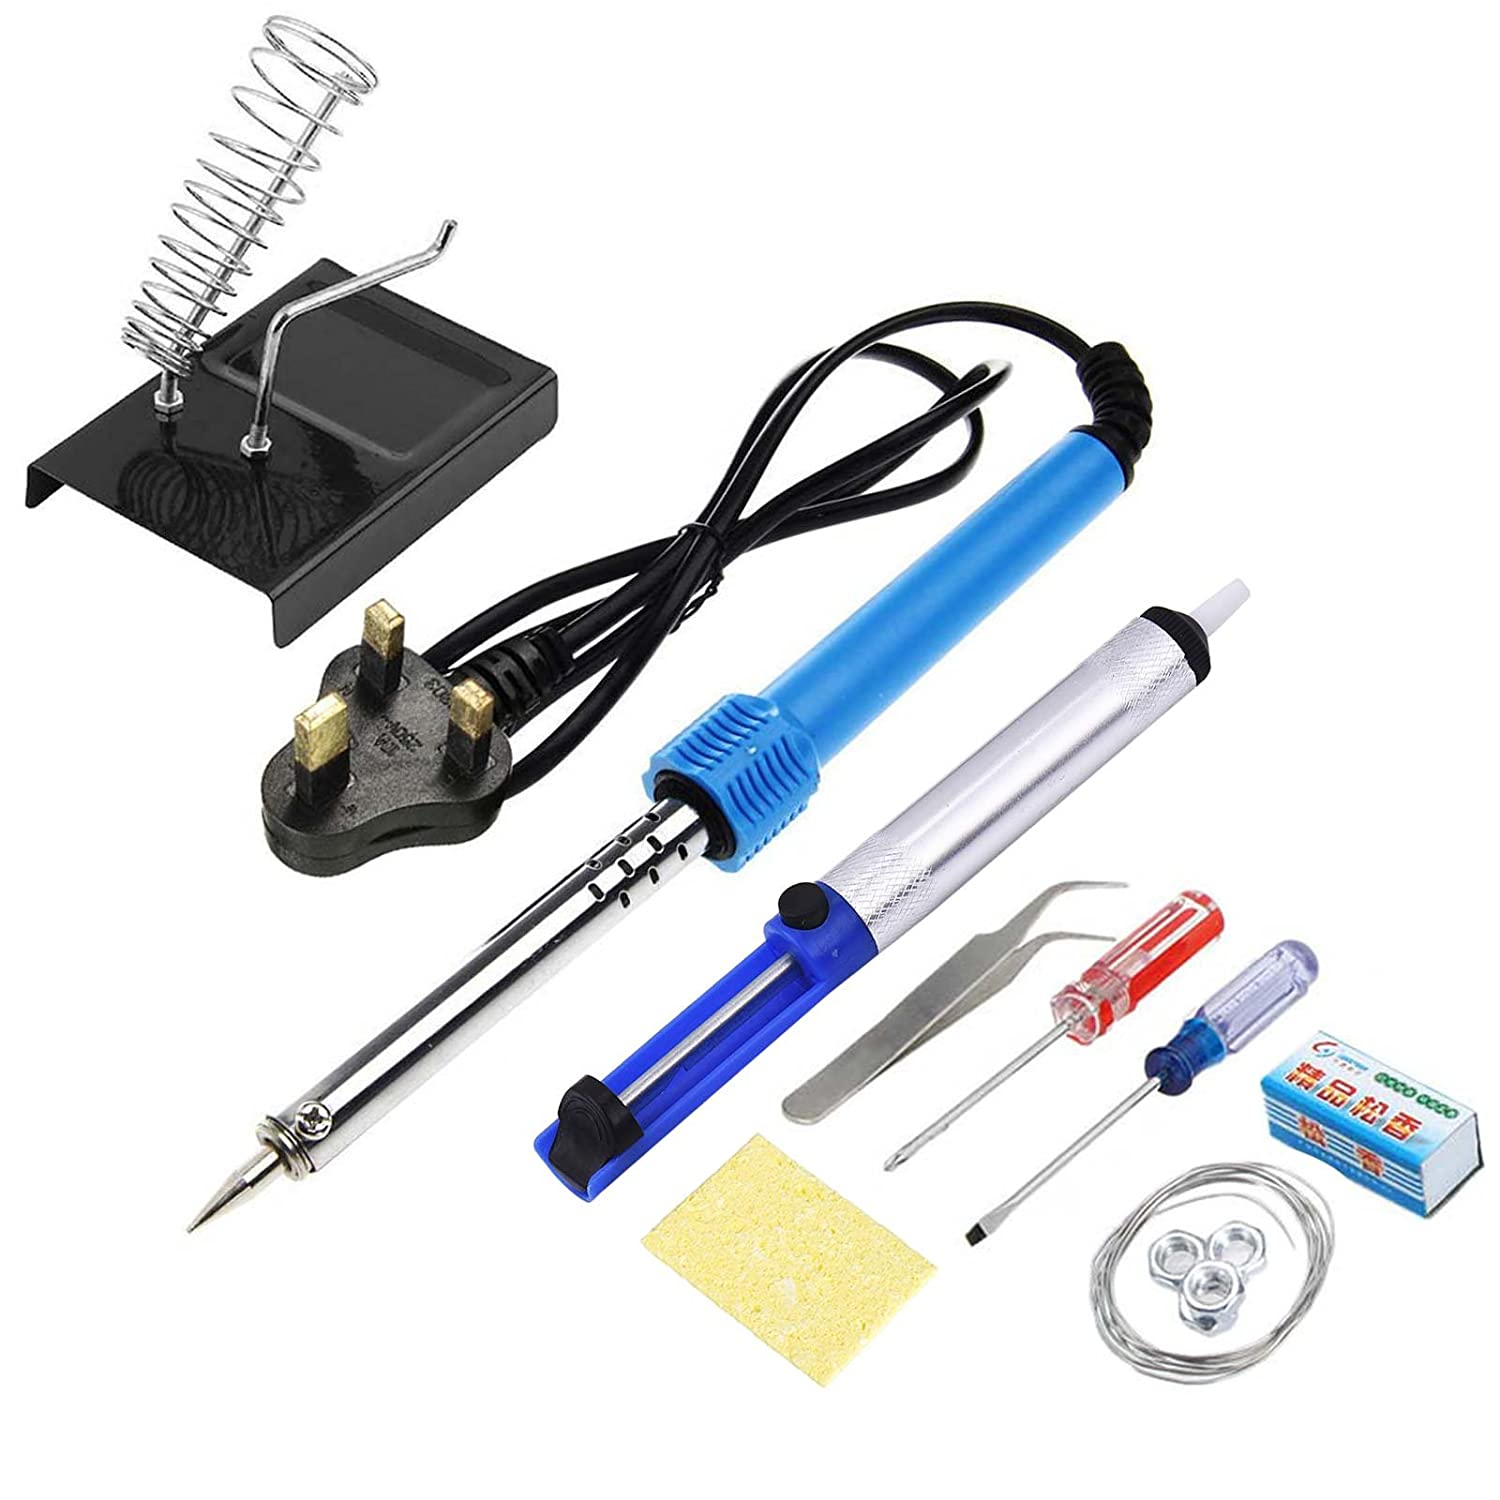 Electric Soldering Kit Solder Soldering Iron 30W /& Stand Base Flux Wire